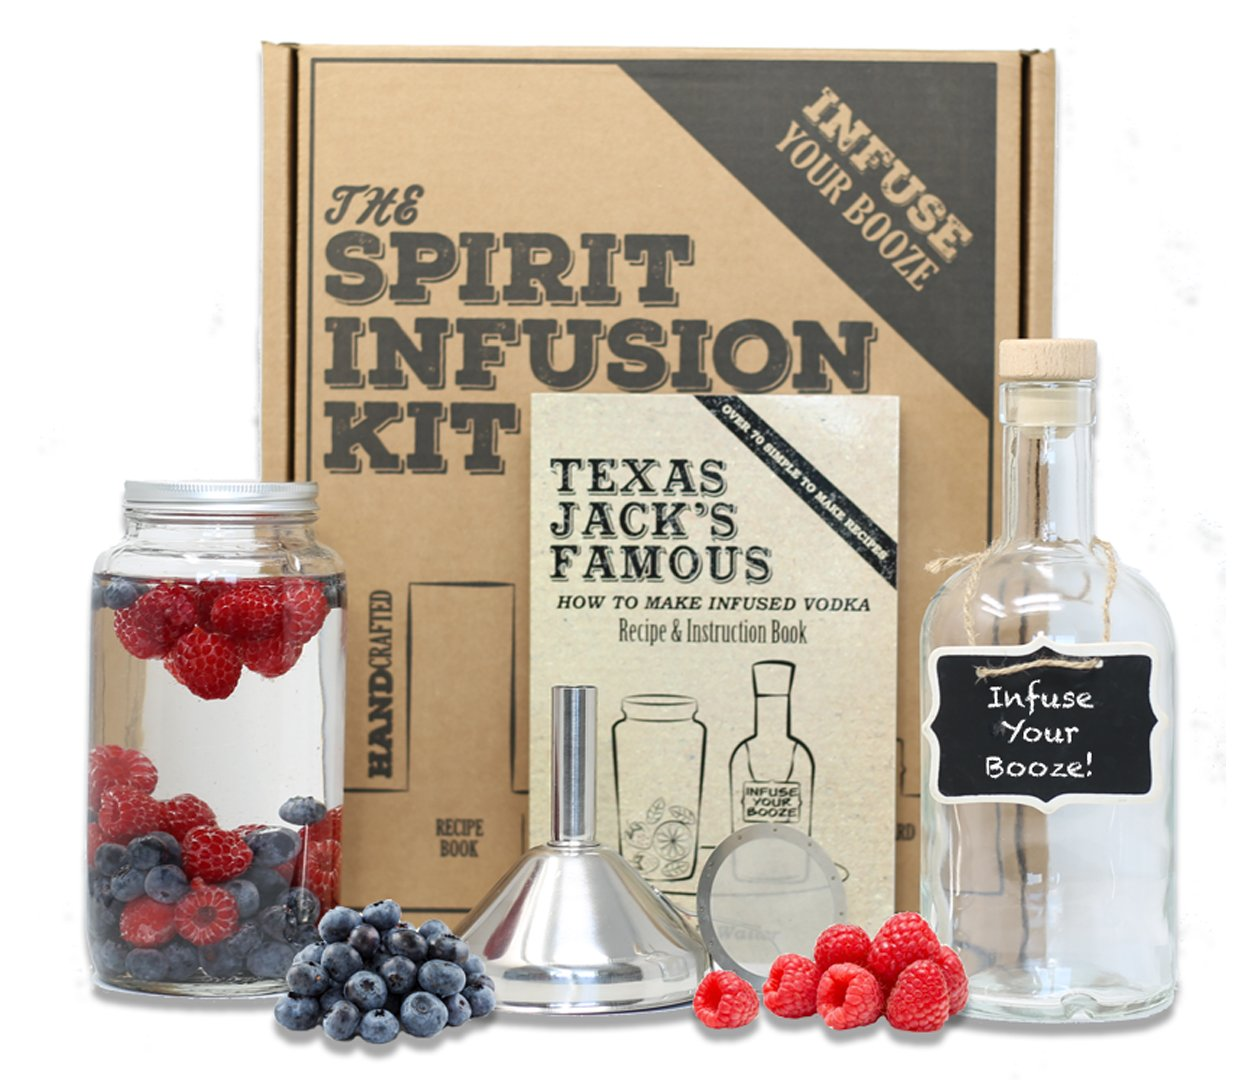 The Spirit Infusion Kit - Infuse Your Booze!